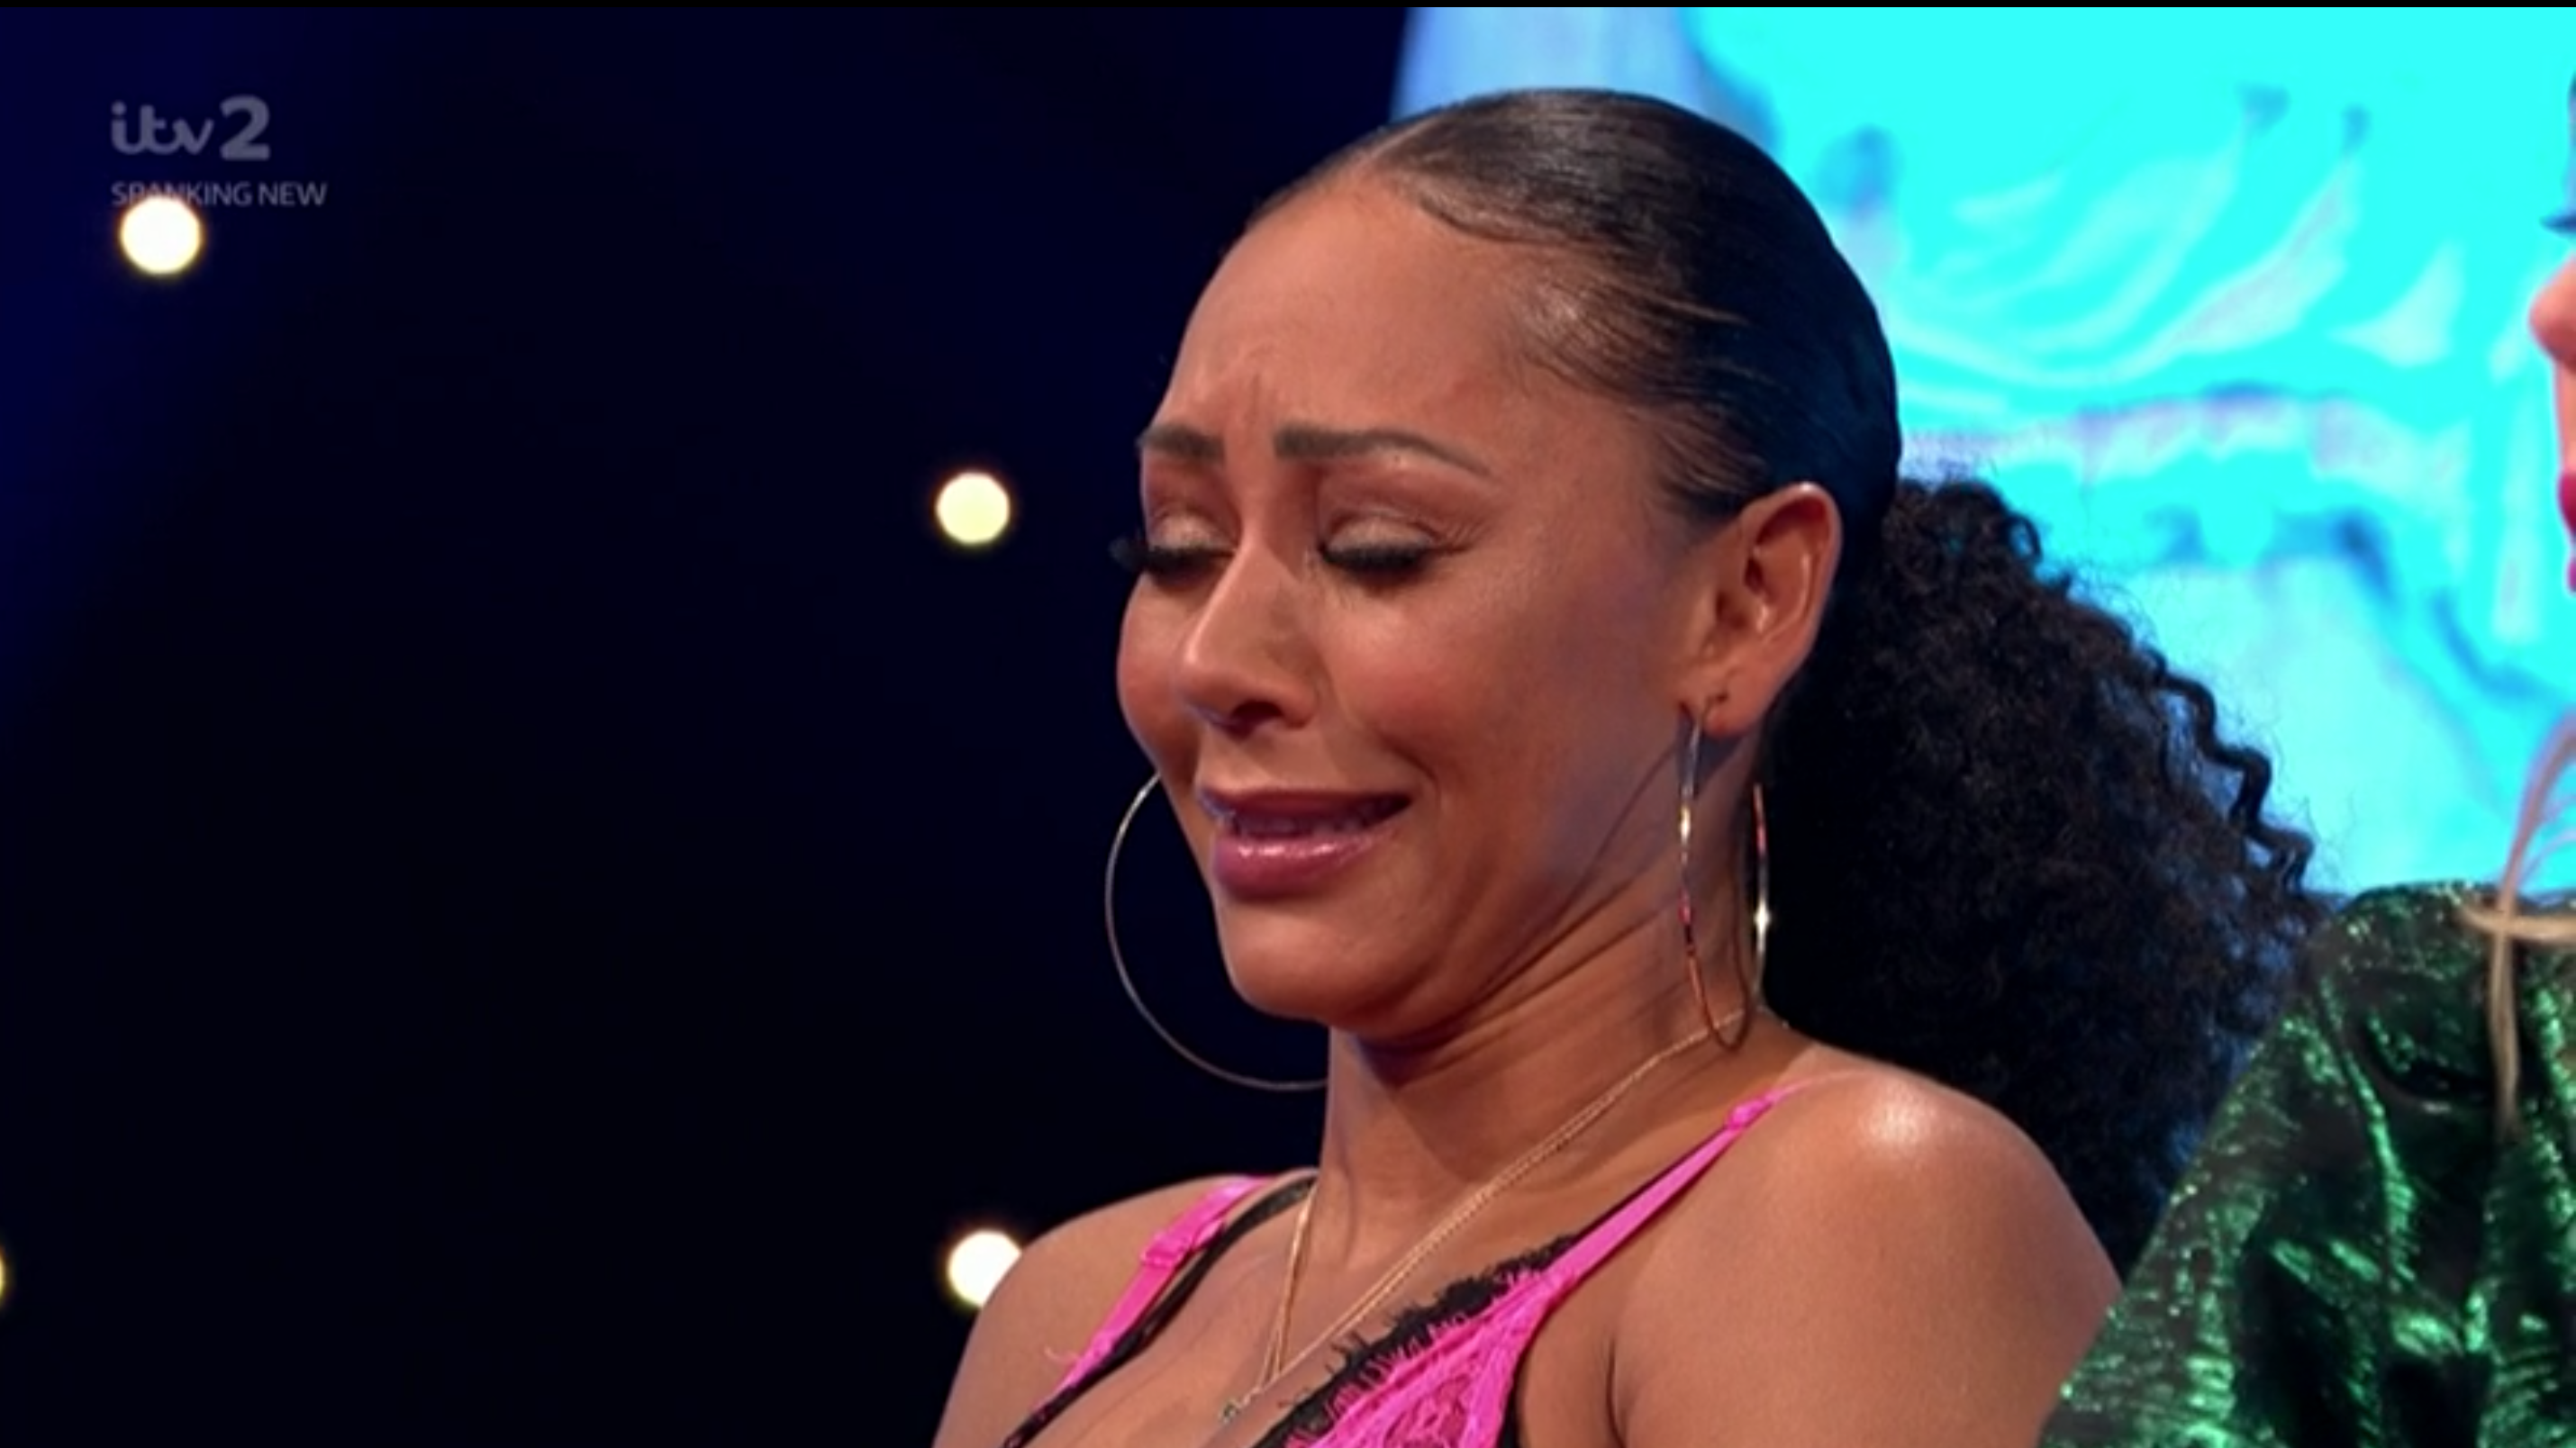 Celebrity Juice's Keith Lemon calls Mel B by the wrong Spice Girls name in her debut as team captain